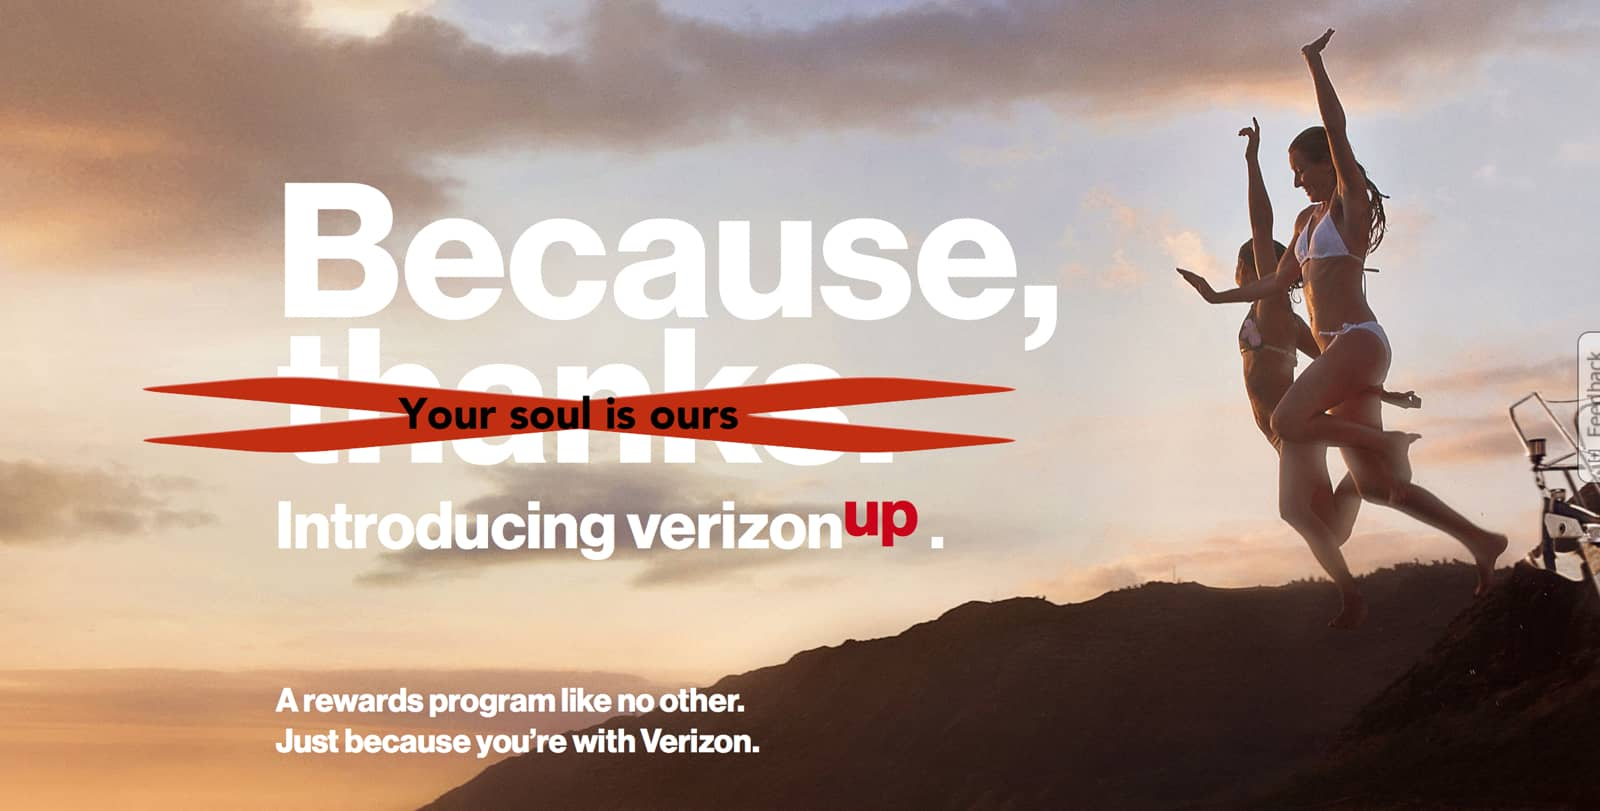 Promotional image of Verizon Up program.